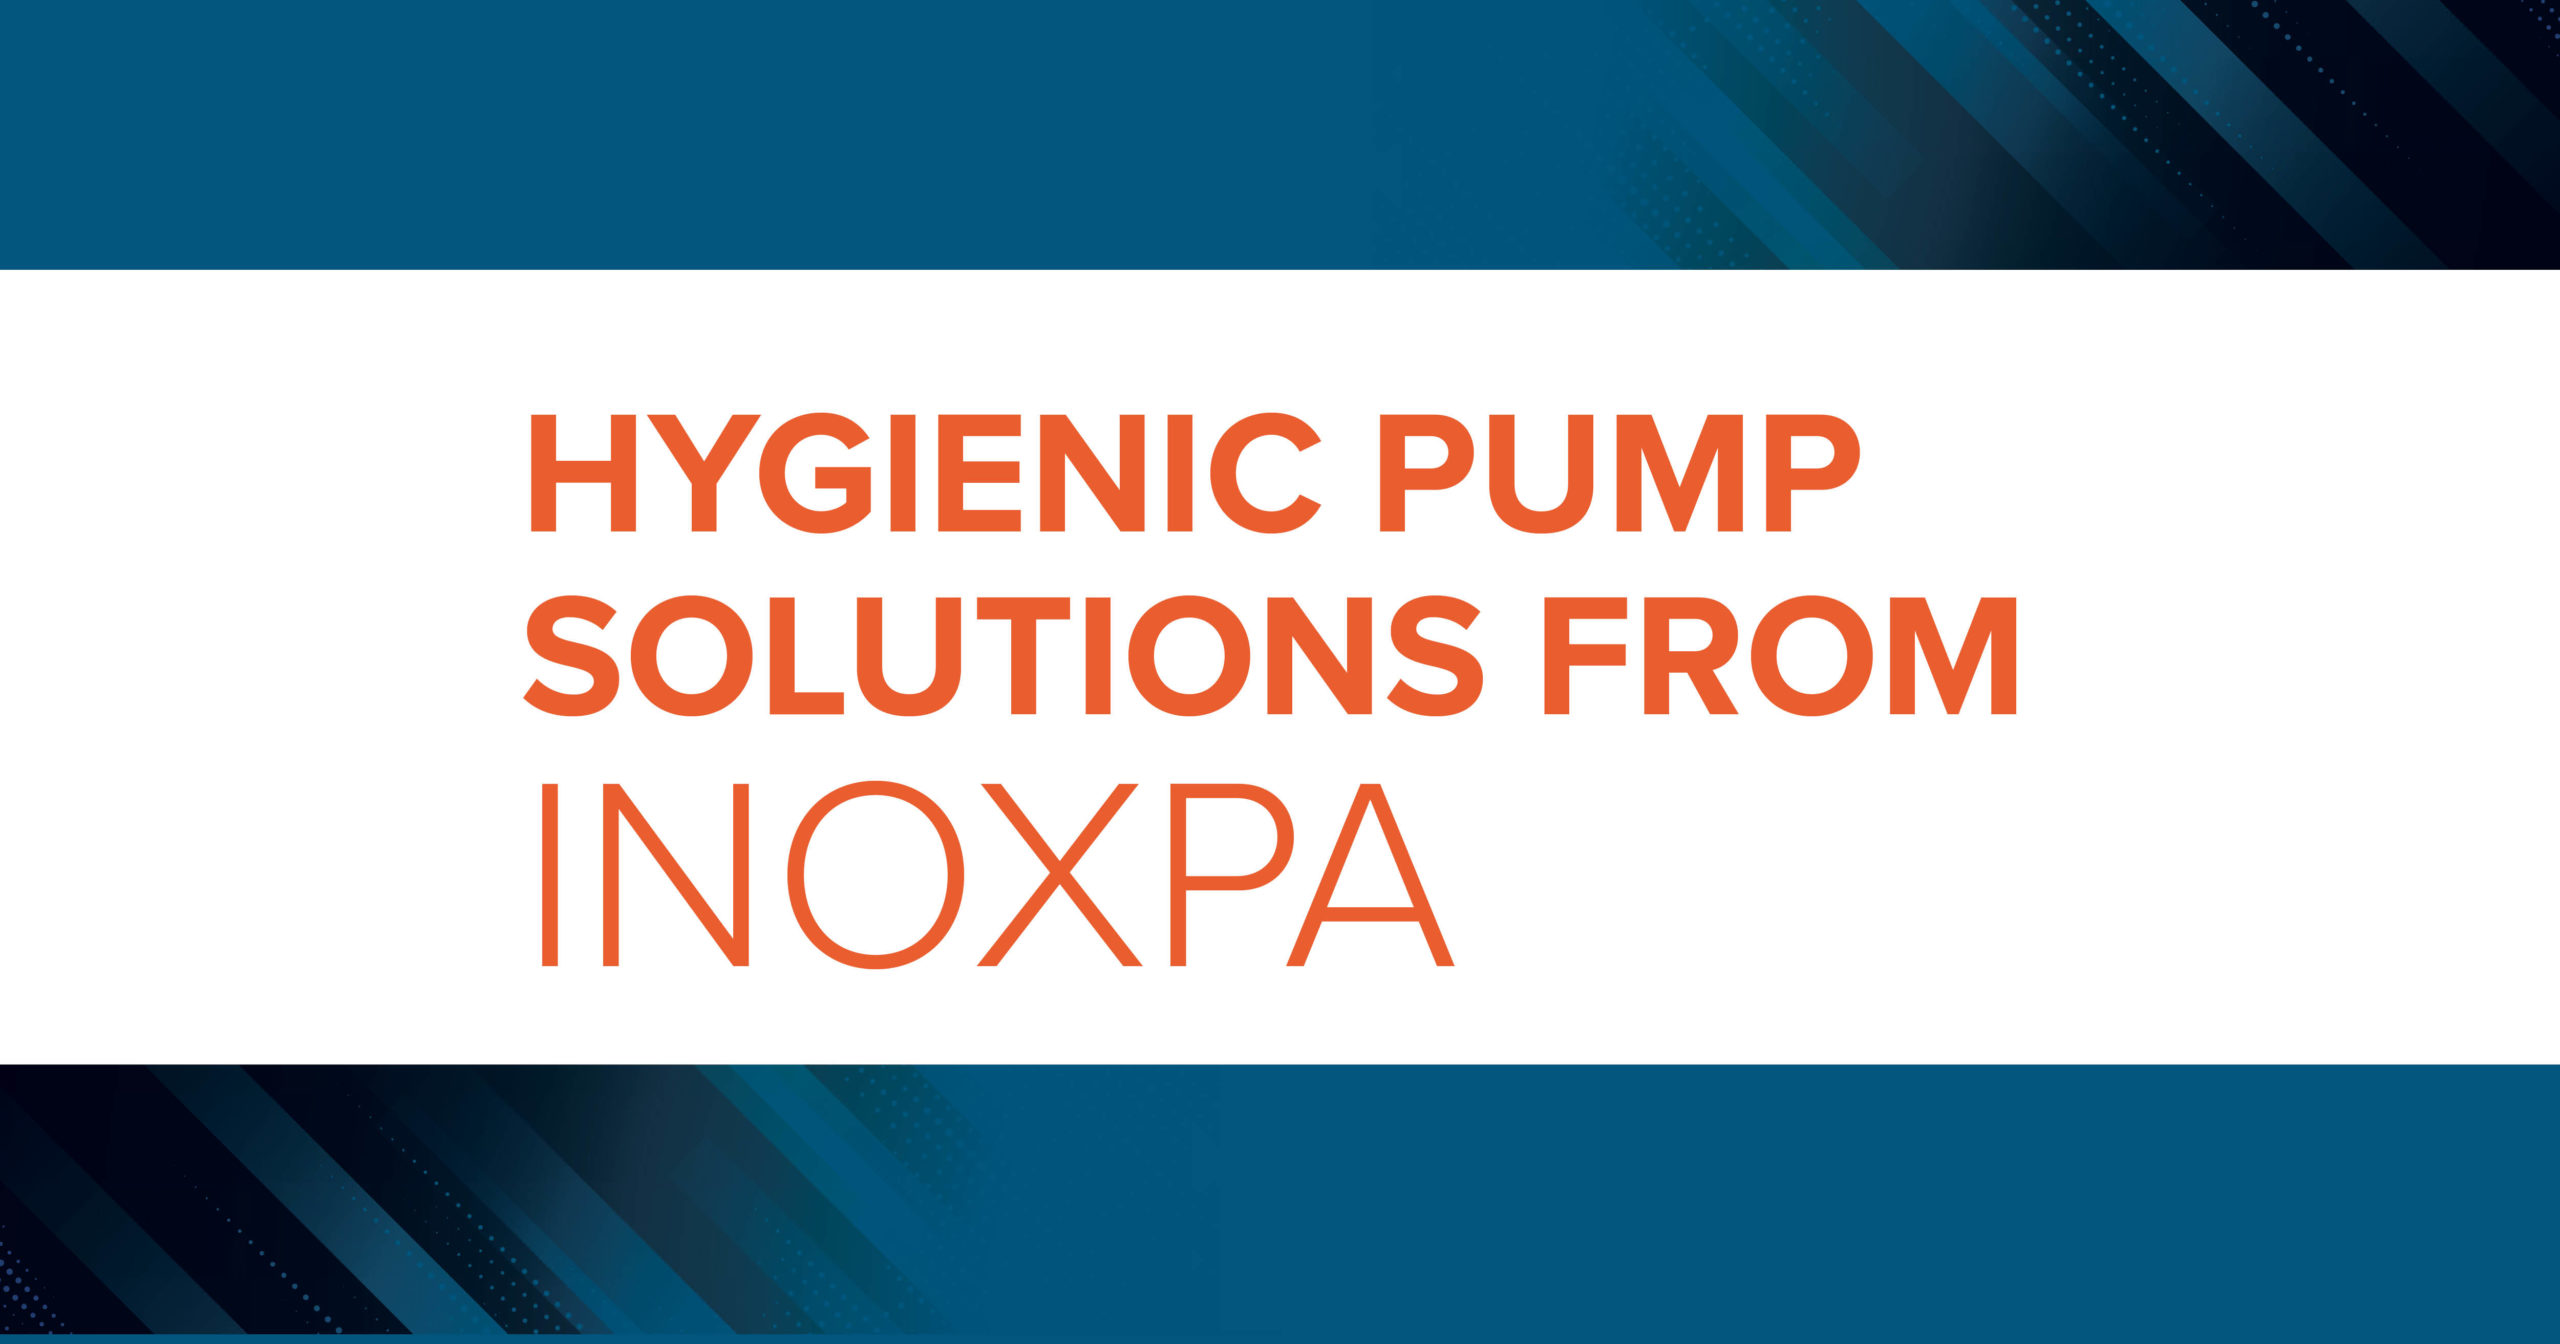 Hygienic Pump Solutions from INOXPA